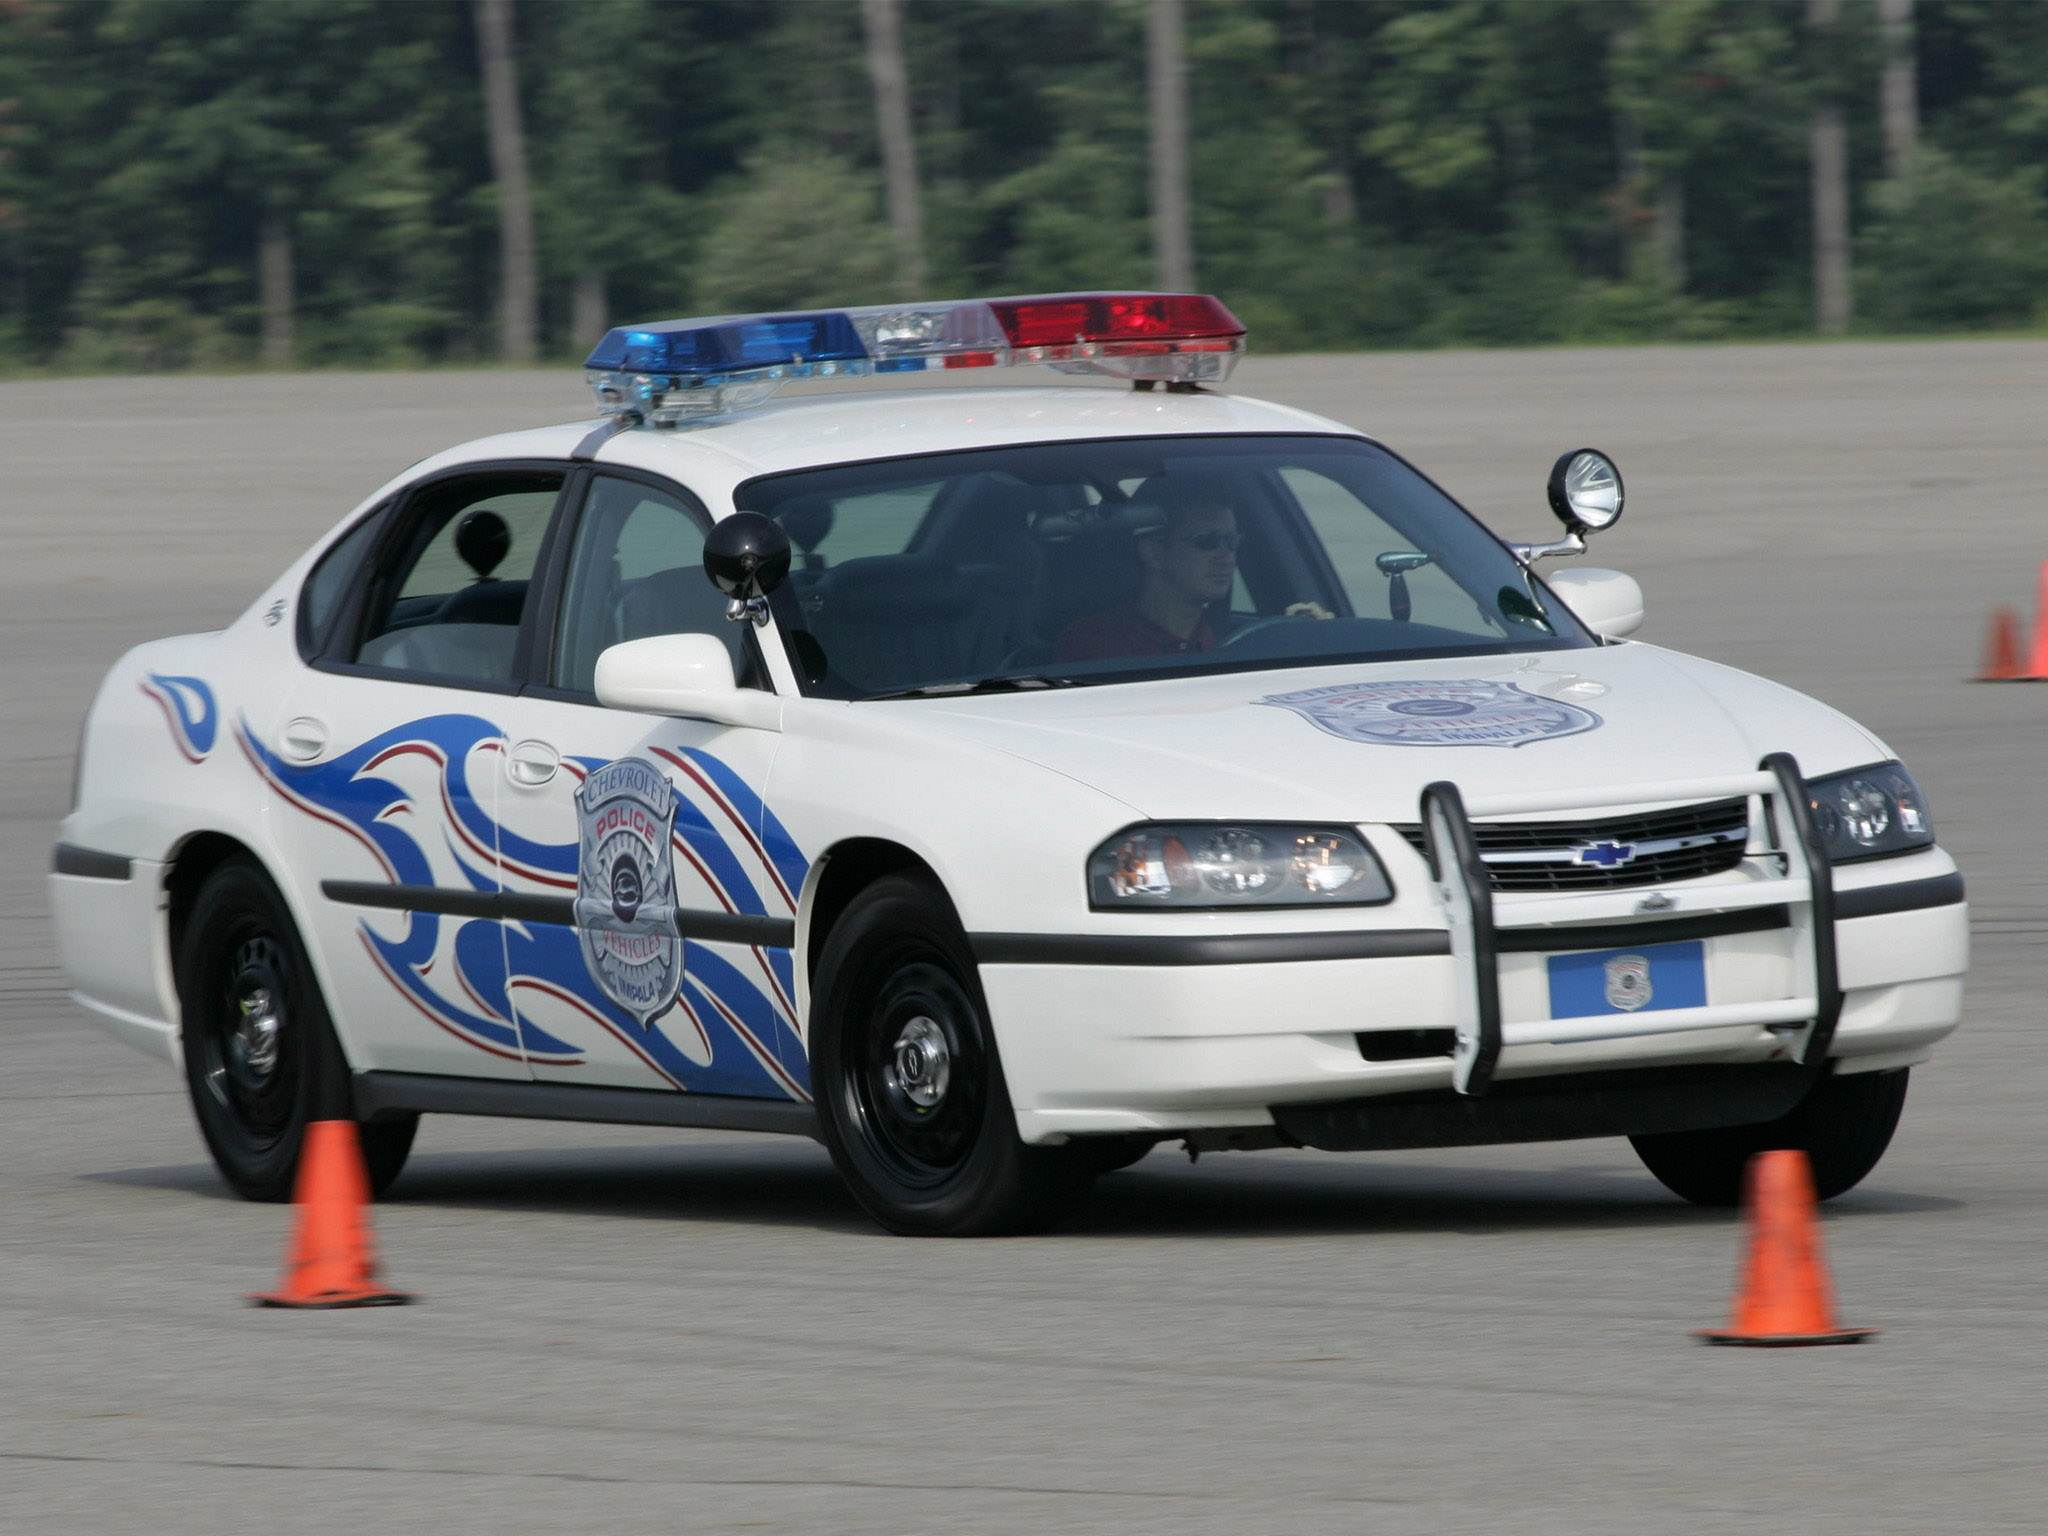 2003 chevrolet impala police muscle fs wallpaper 2048x1536 108813 wallpaperup